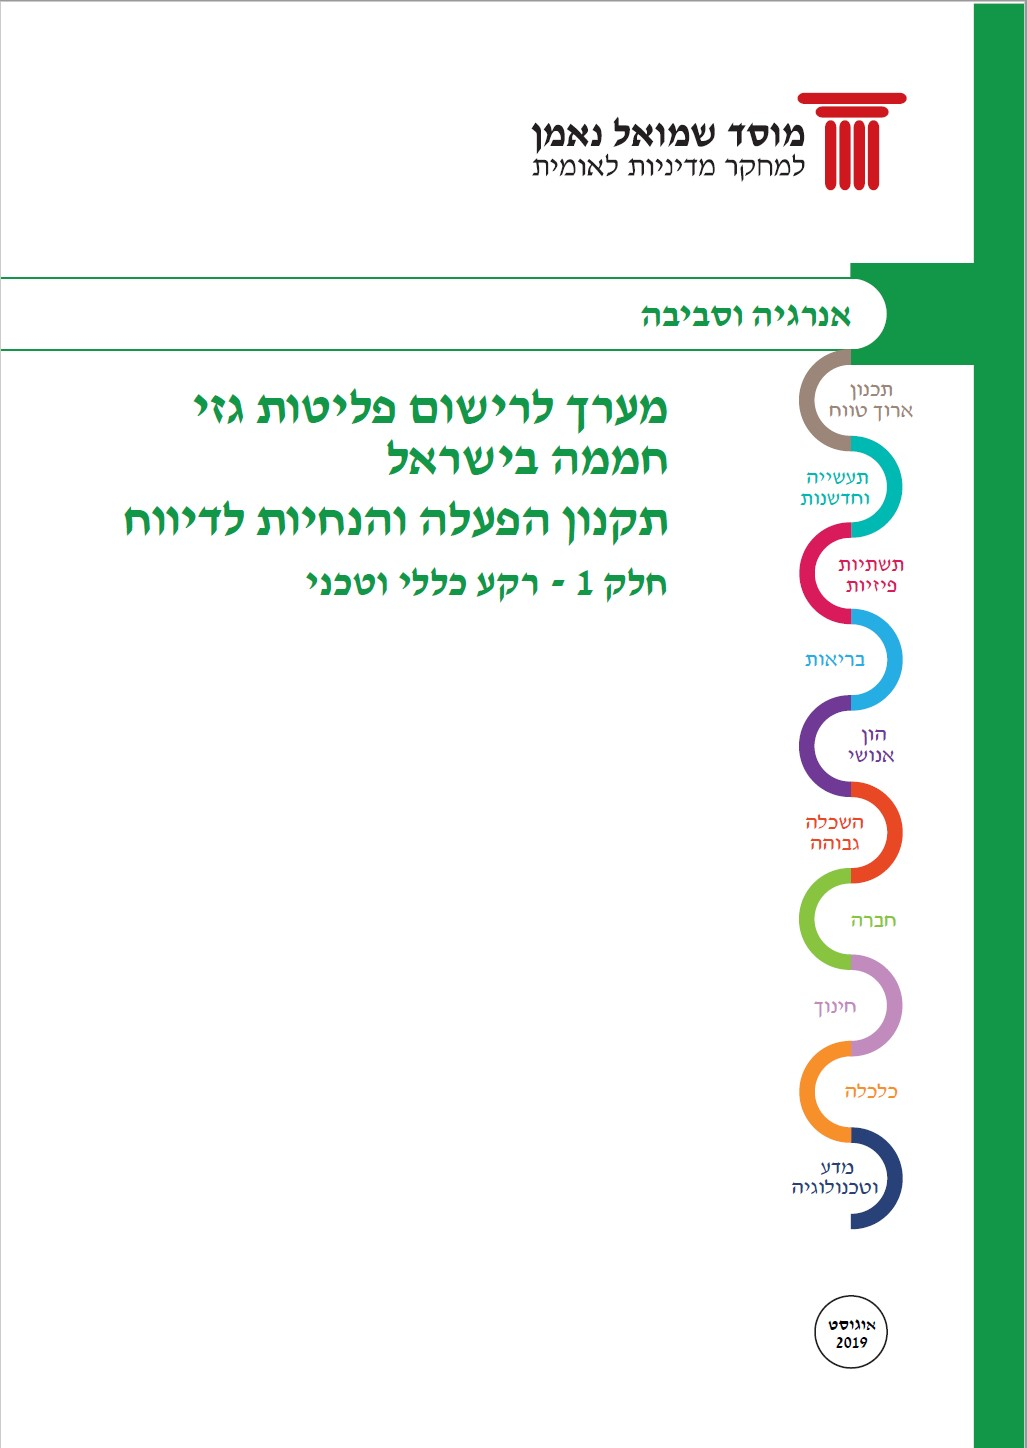 Greenhouse Gases emissions registry in Israel accounting and reporting protocol